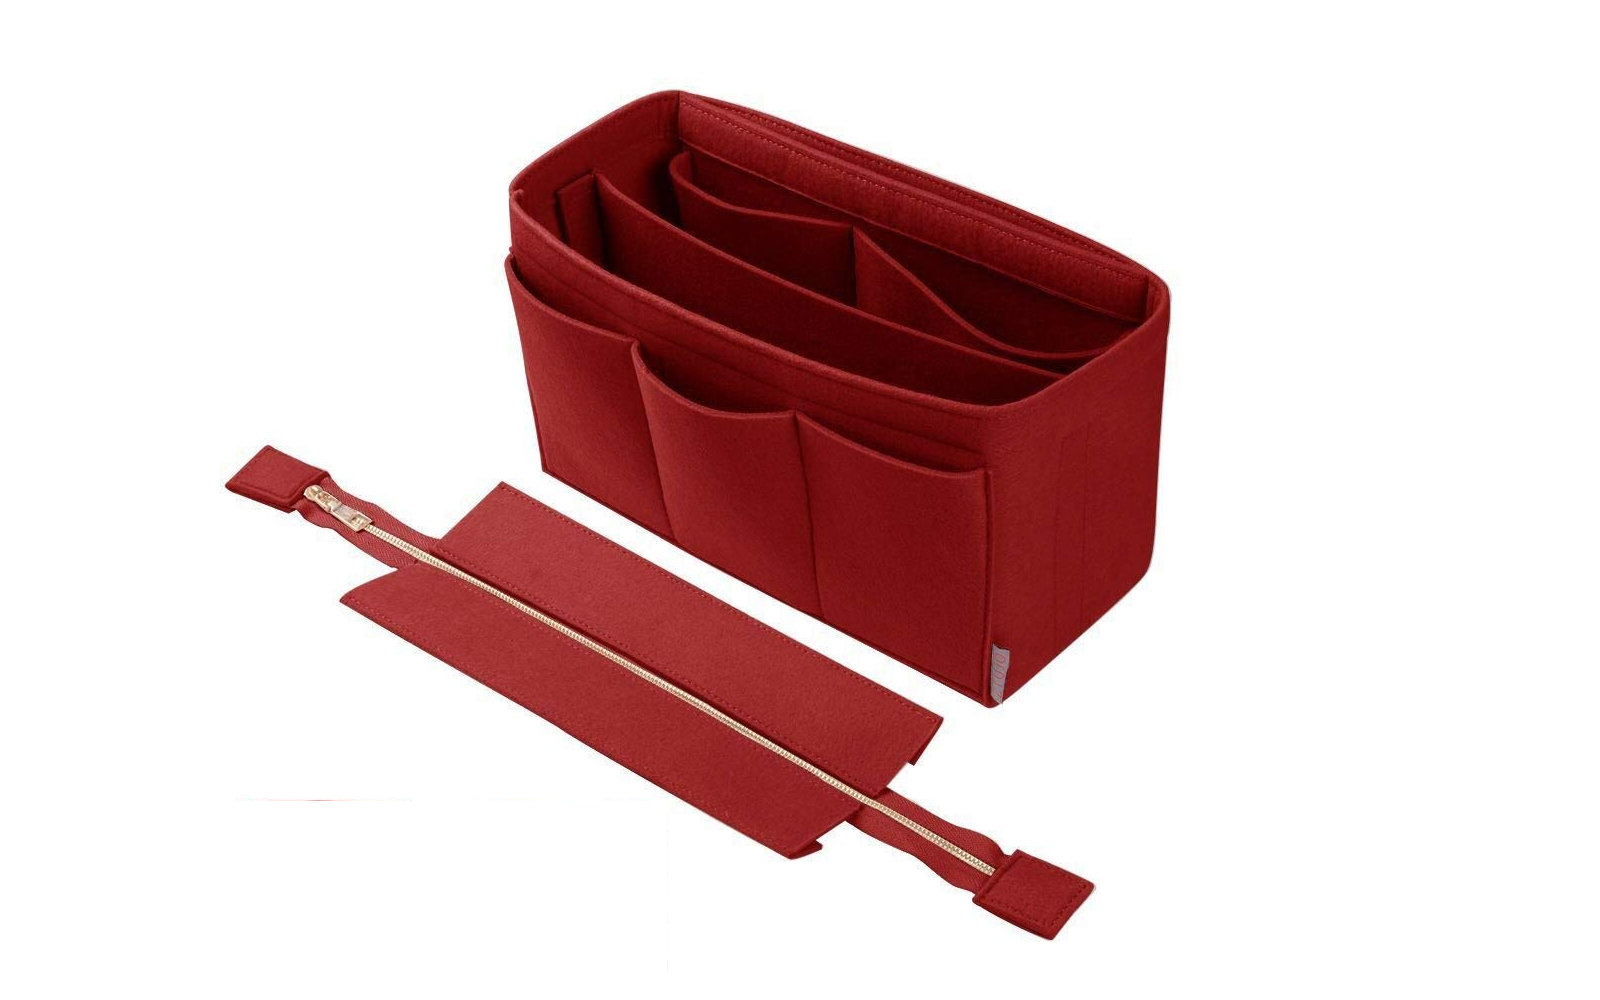 Ztujo Purse Organizer Insert With Detachable Zipper Cover